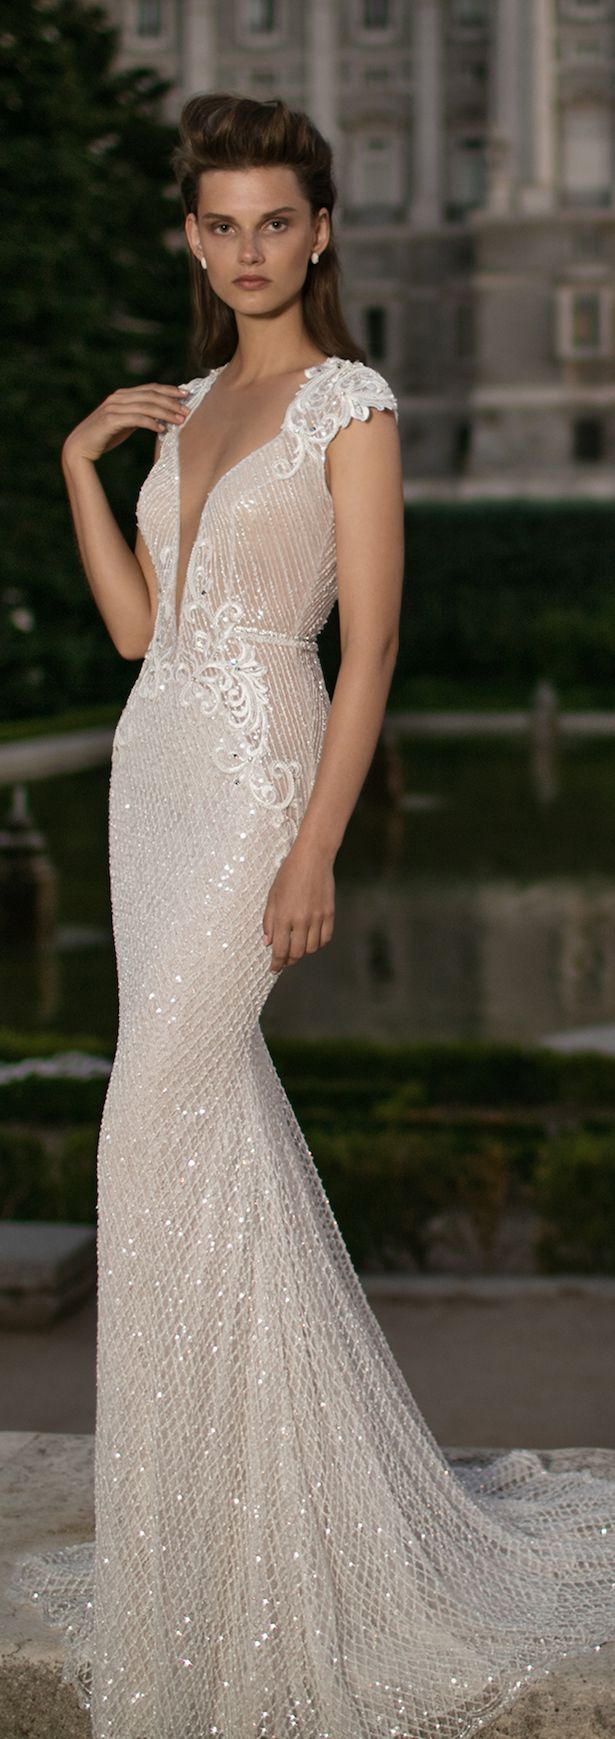 Wedding Dress by Berta Spring 2016 Bridal Collection - Belle The Magazine                                                                                                                                                                                 More